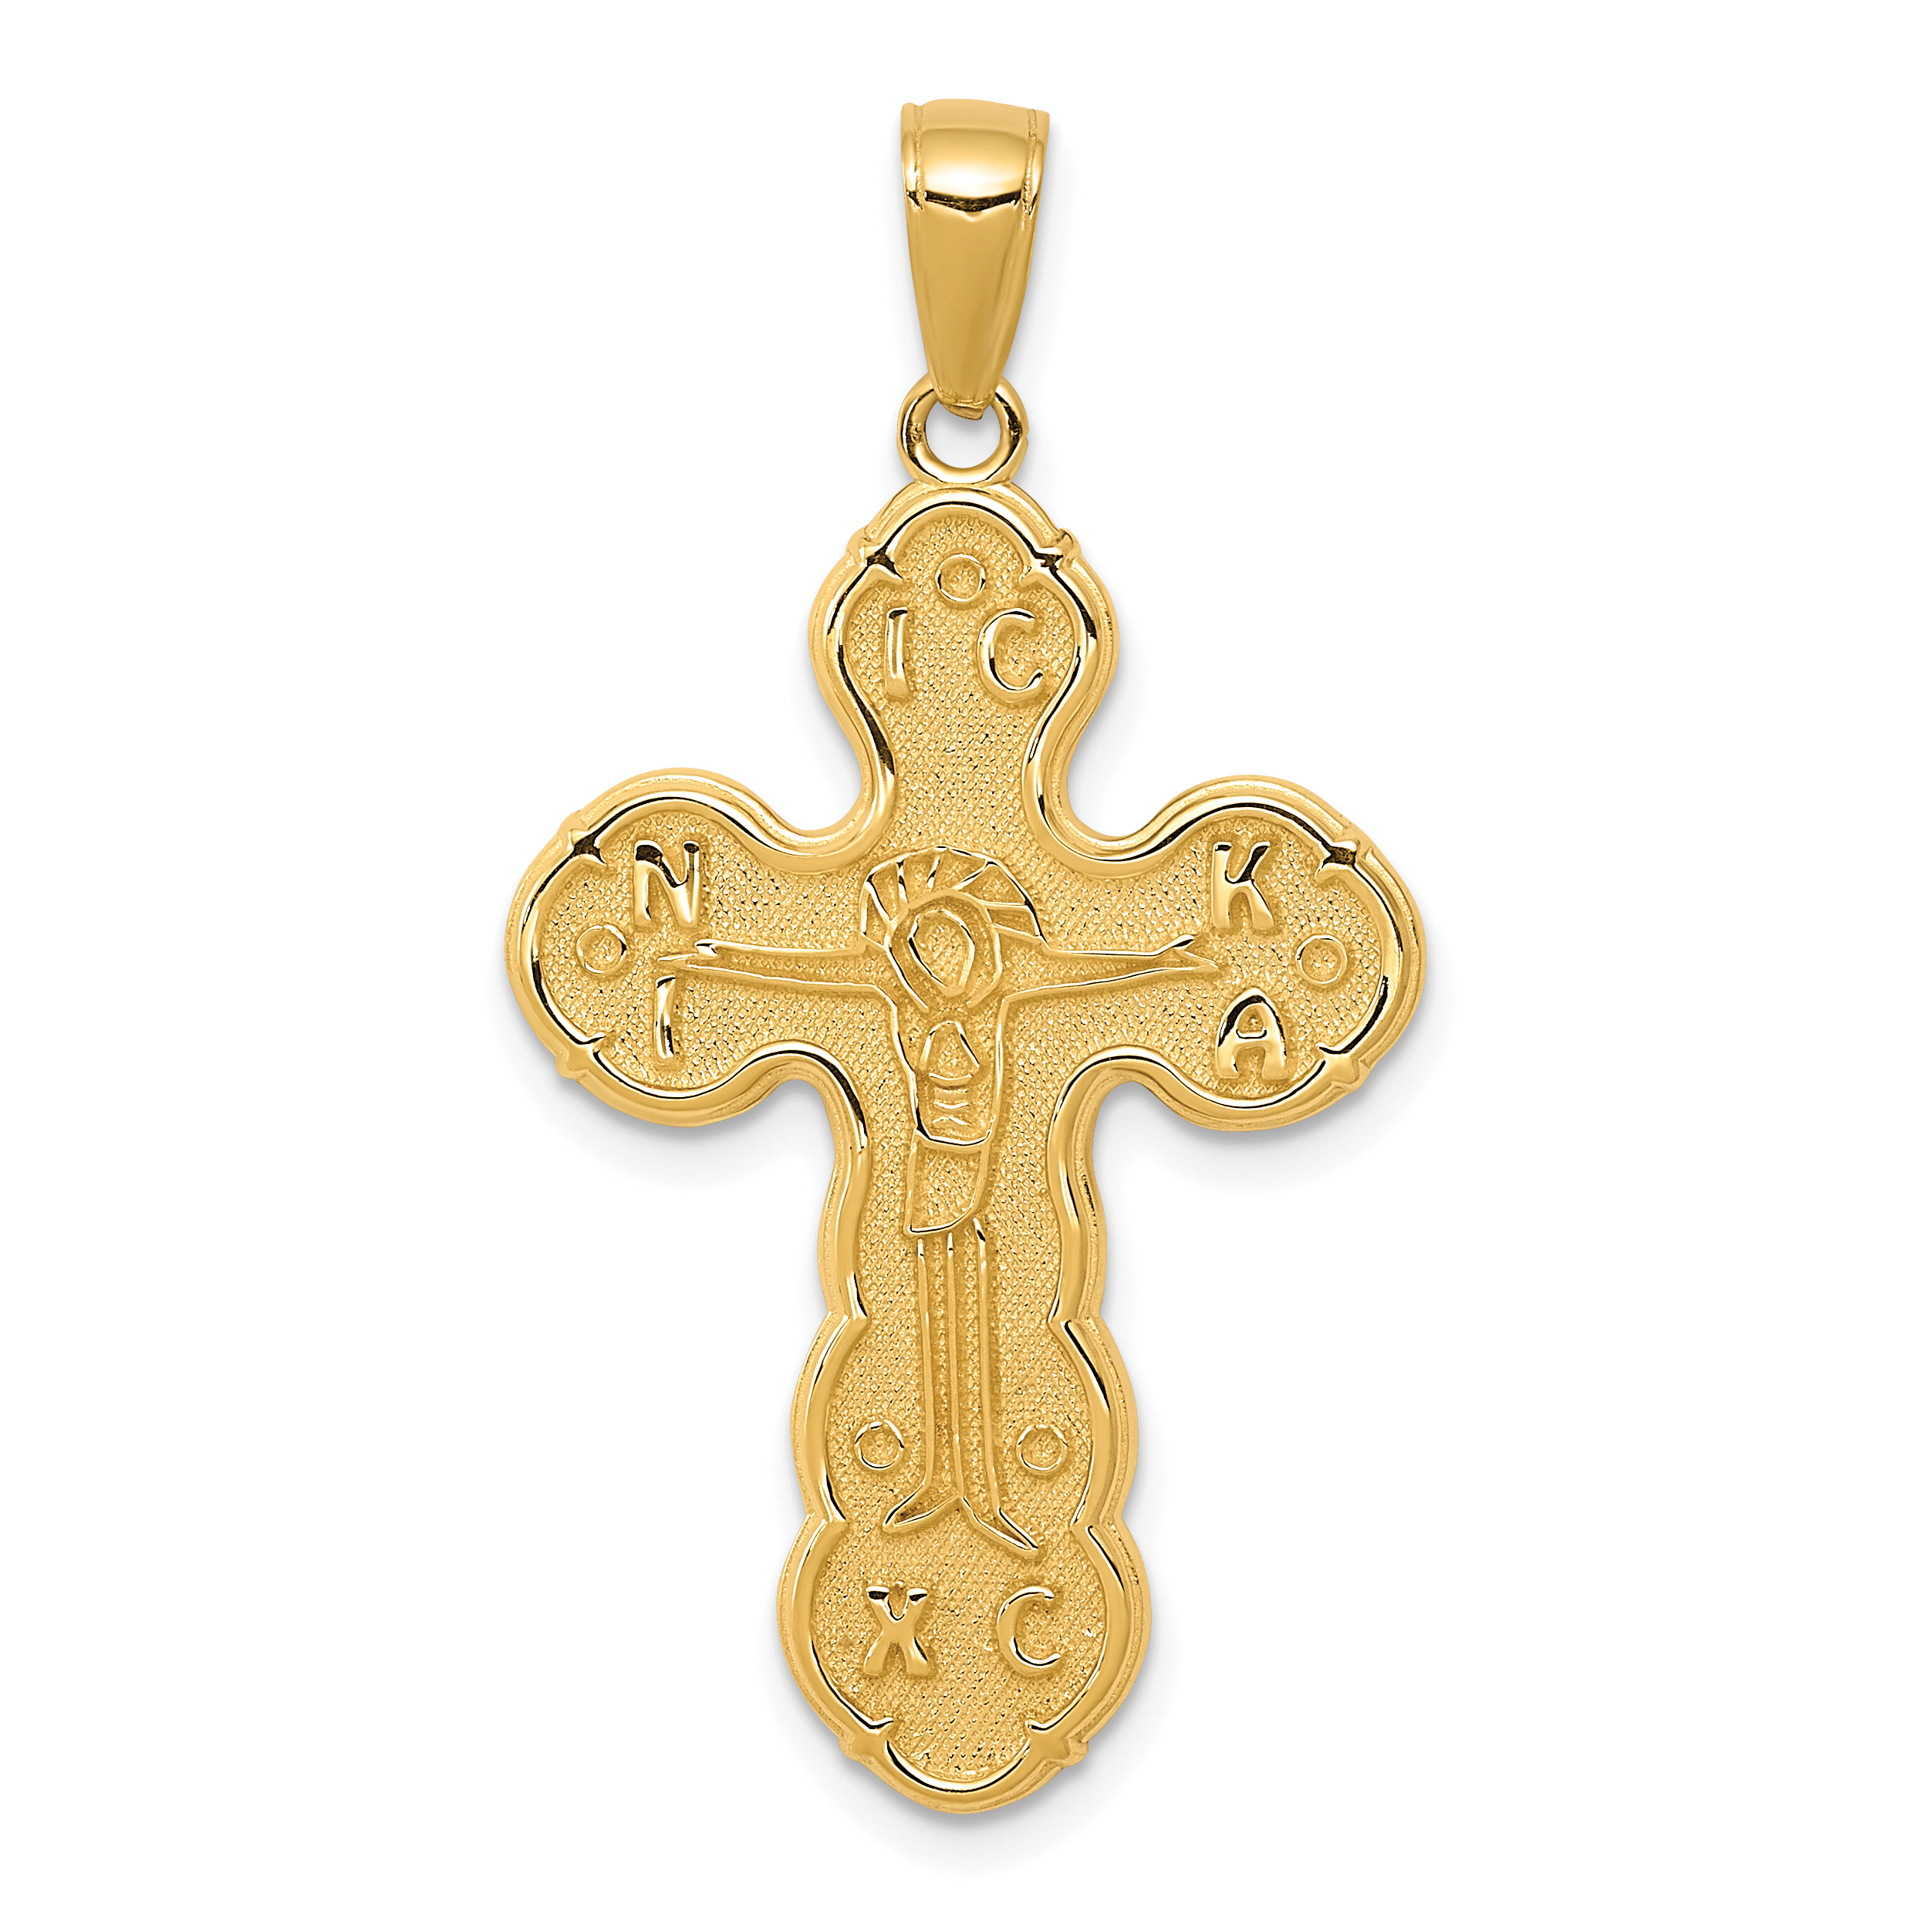 14k Yellow Gold Crucifix Cross Religious Pendant Charm Necklace Fine Jewelry Gifts For Women For Her - image 2 of 2